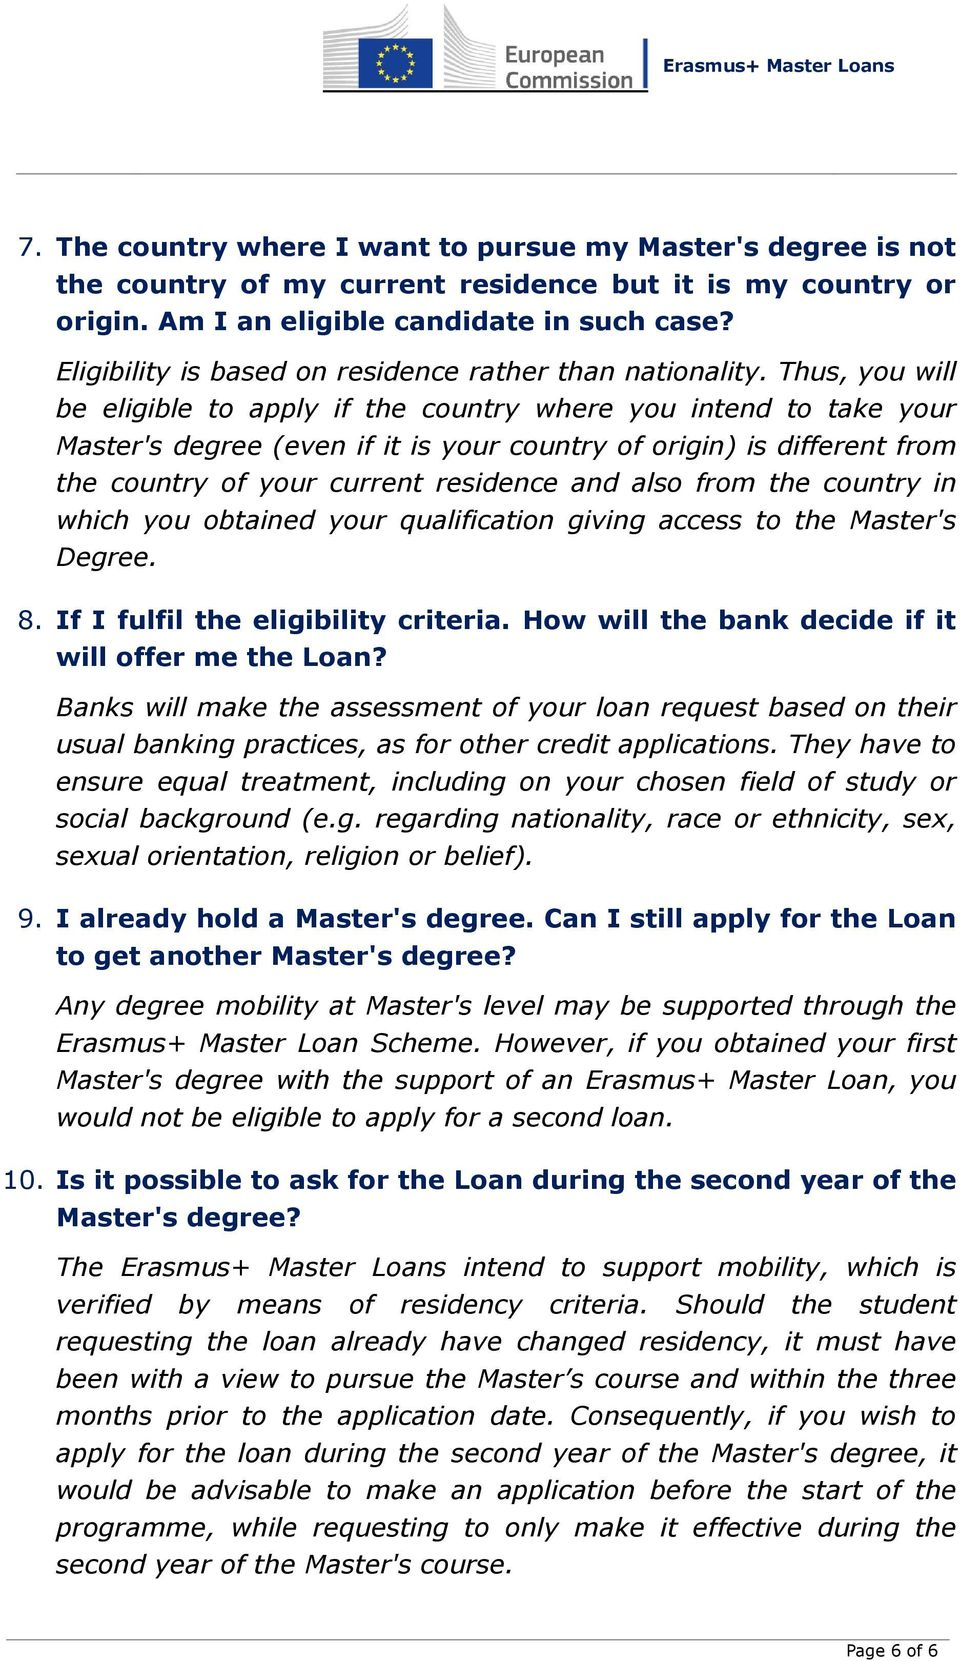 Thus, you will be eligible to apply if the country where you intend to take your Master's degree (even if it is your country of origin) is different from the country of your current residence and